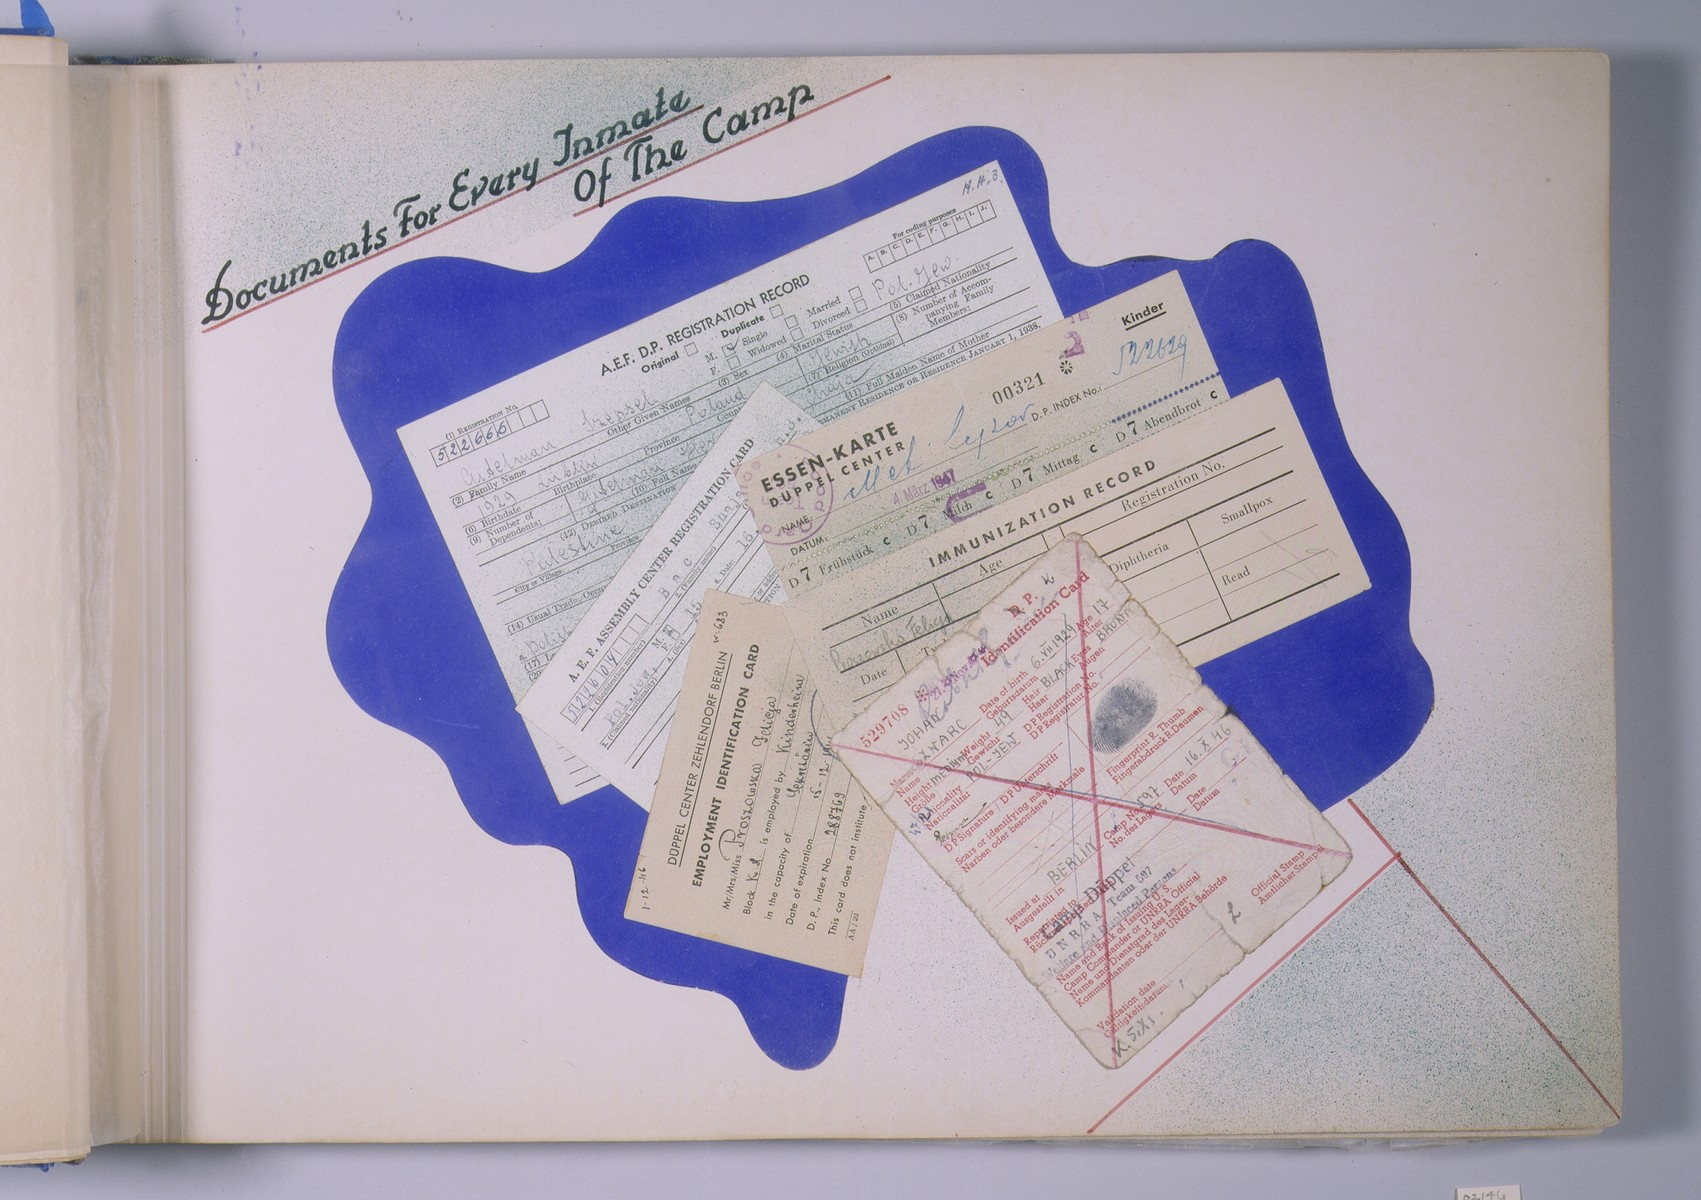 """One page of a scrapbook/photo album that includes photographs of different types of documents held by Jews living in the Schlachtensee displaced persons camp.  The page bears the heading, """"Documents for Every Inmate of the Camp.""""   The album was assembled by Pinkus Proszowski, a graphic designer originally from Lodz, who served as director of the children's home in the Schlachtensee displaced persons camp."""